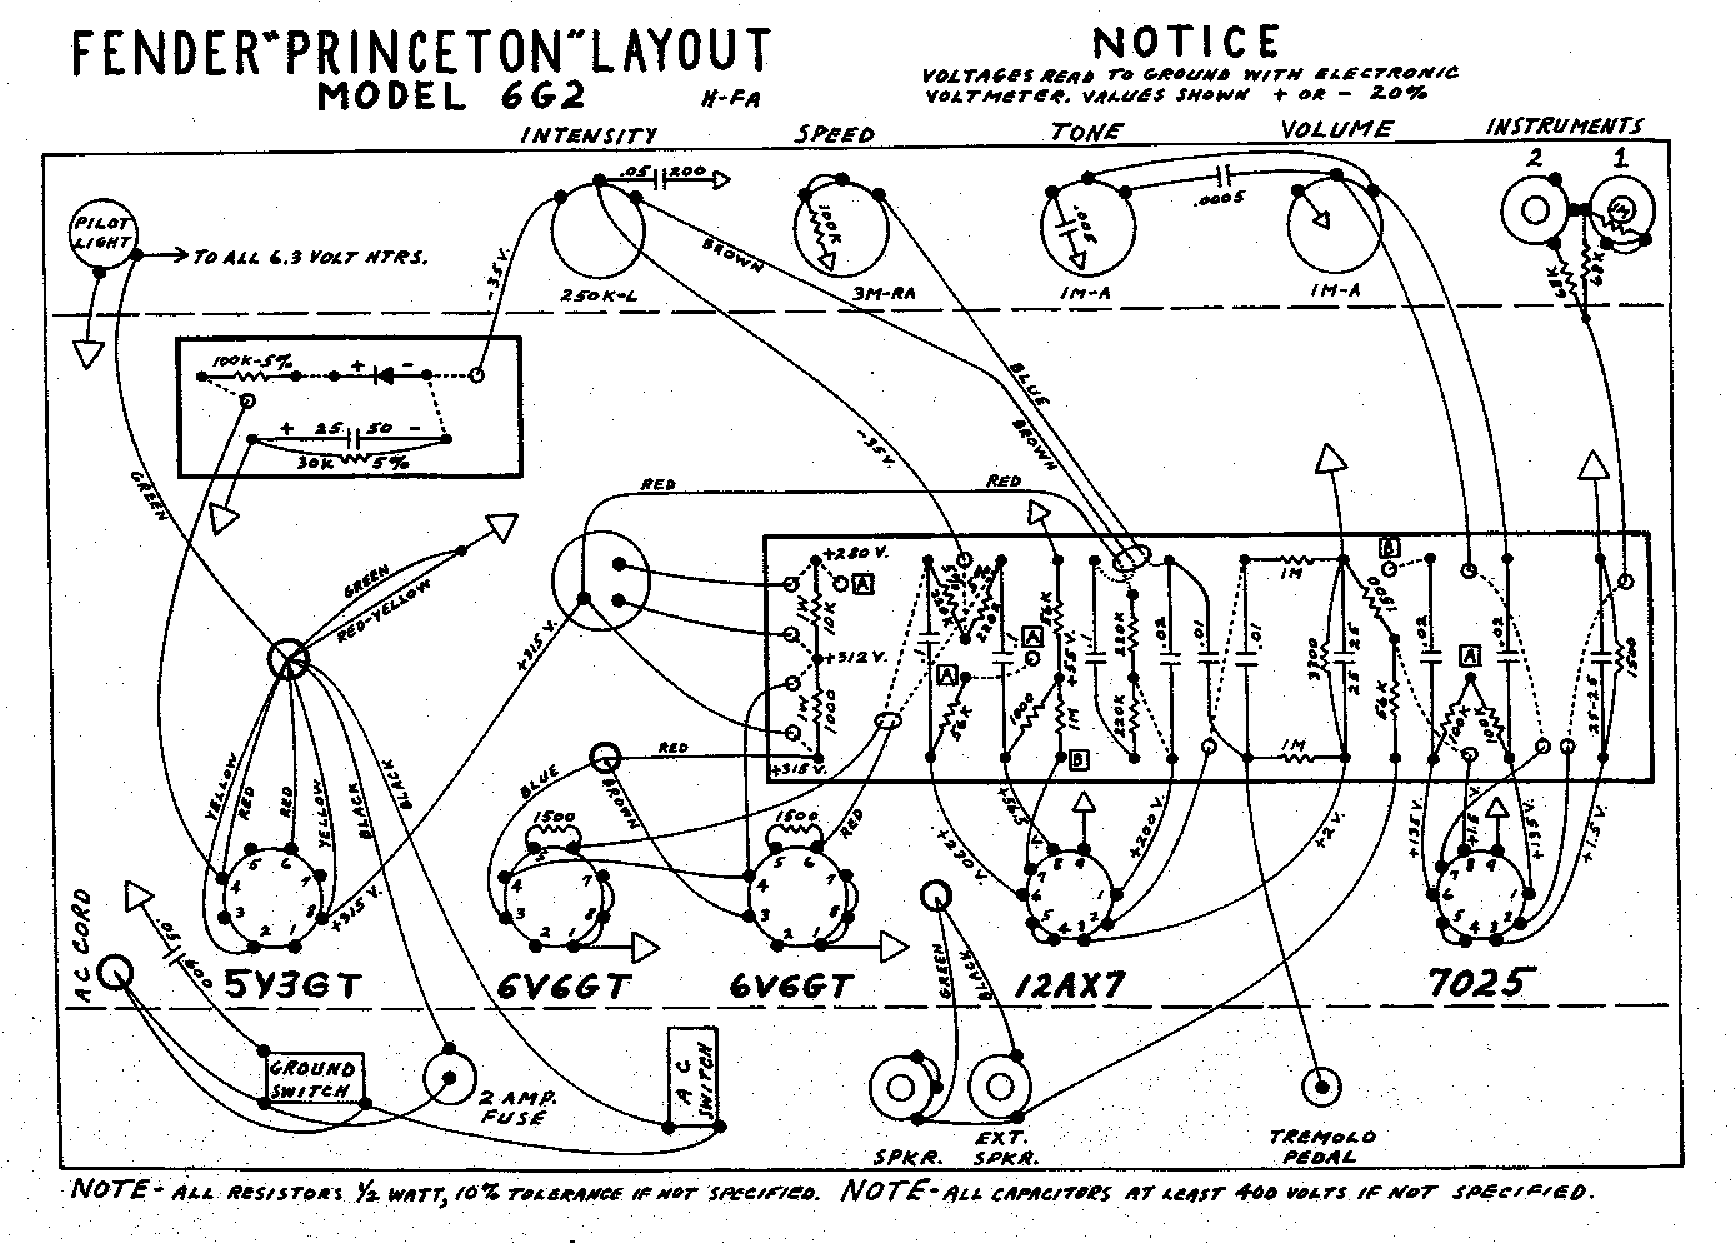 Fender Princeton 6g2 Layout Service Manual Download